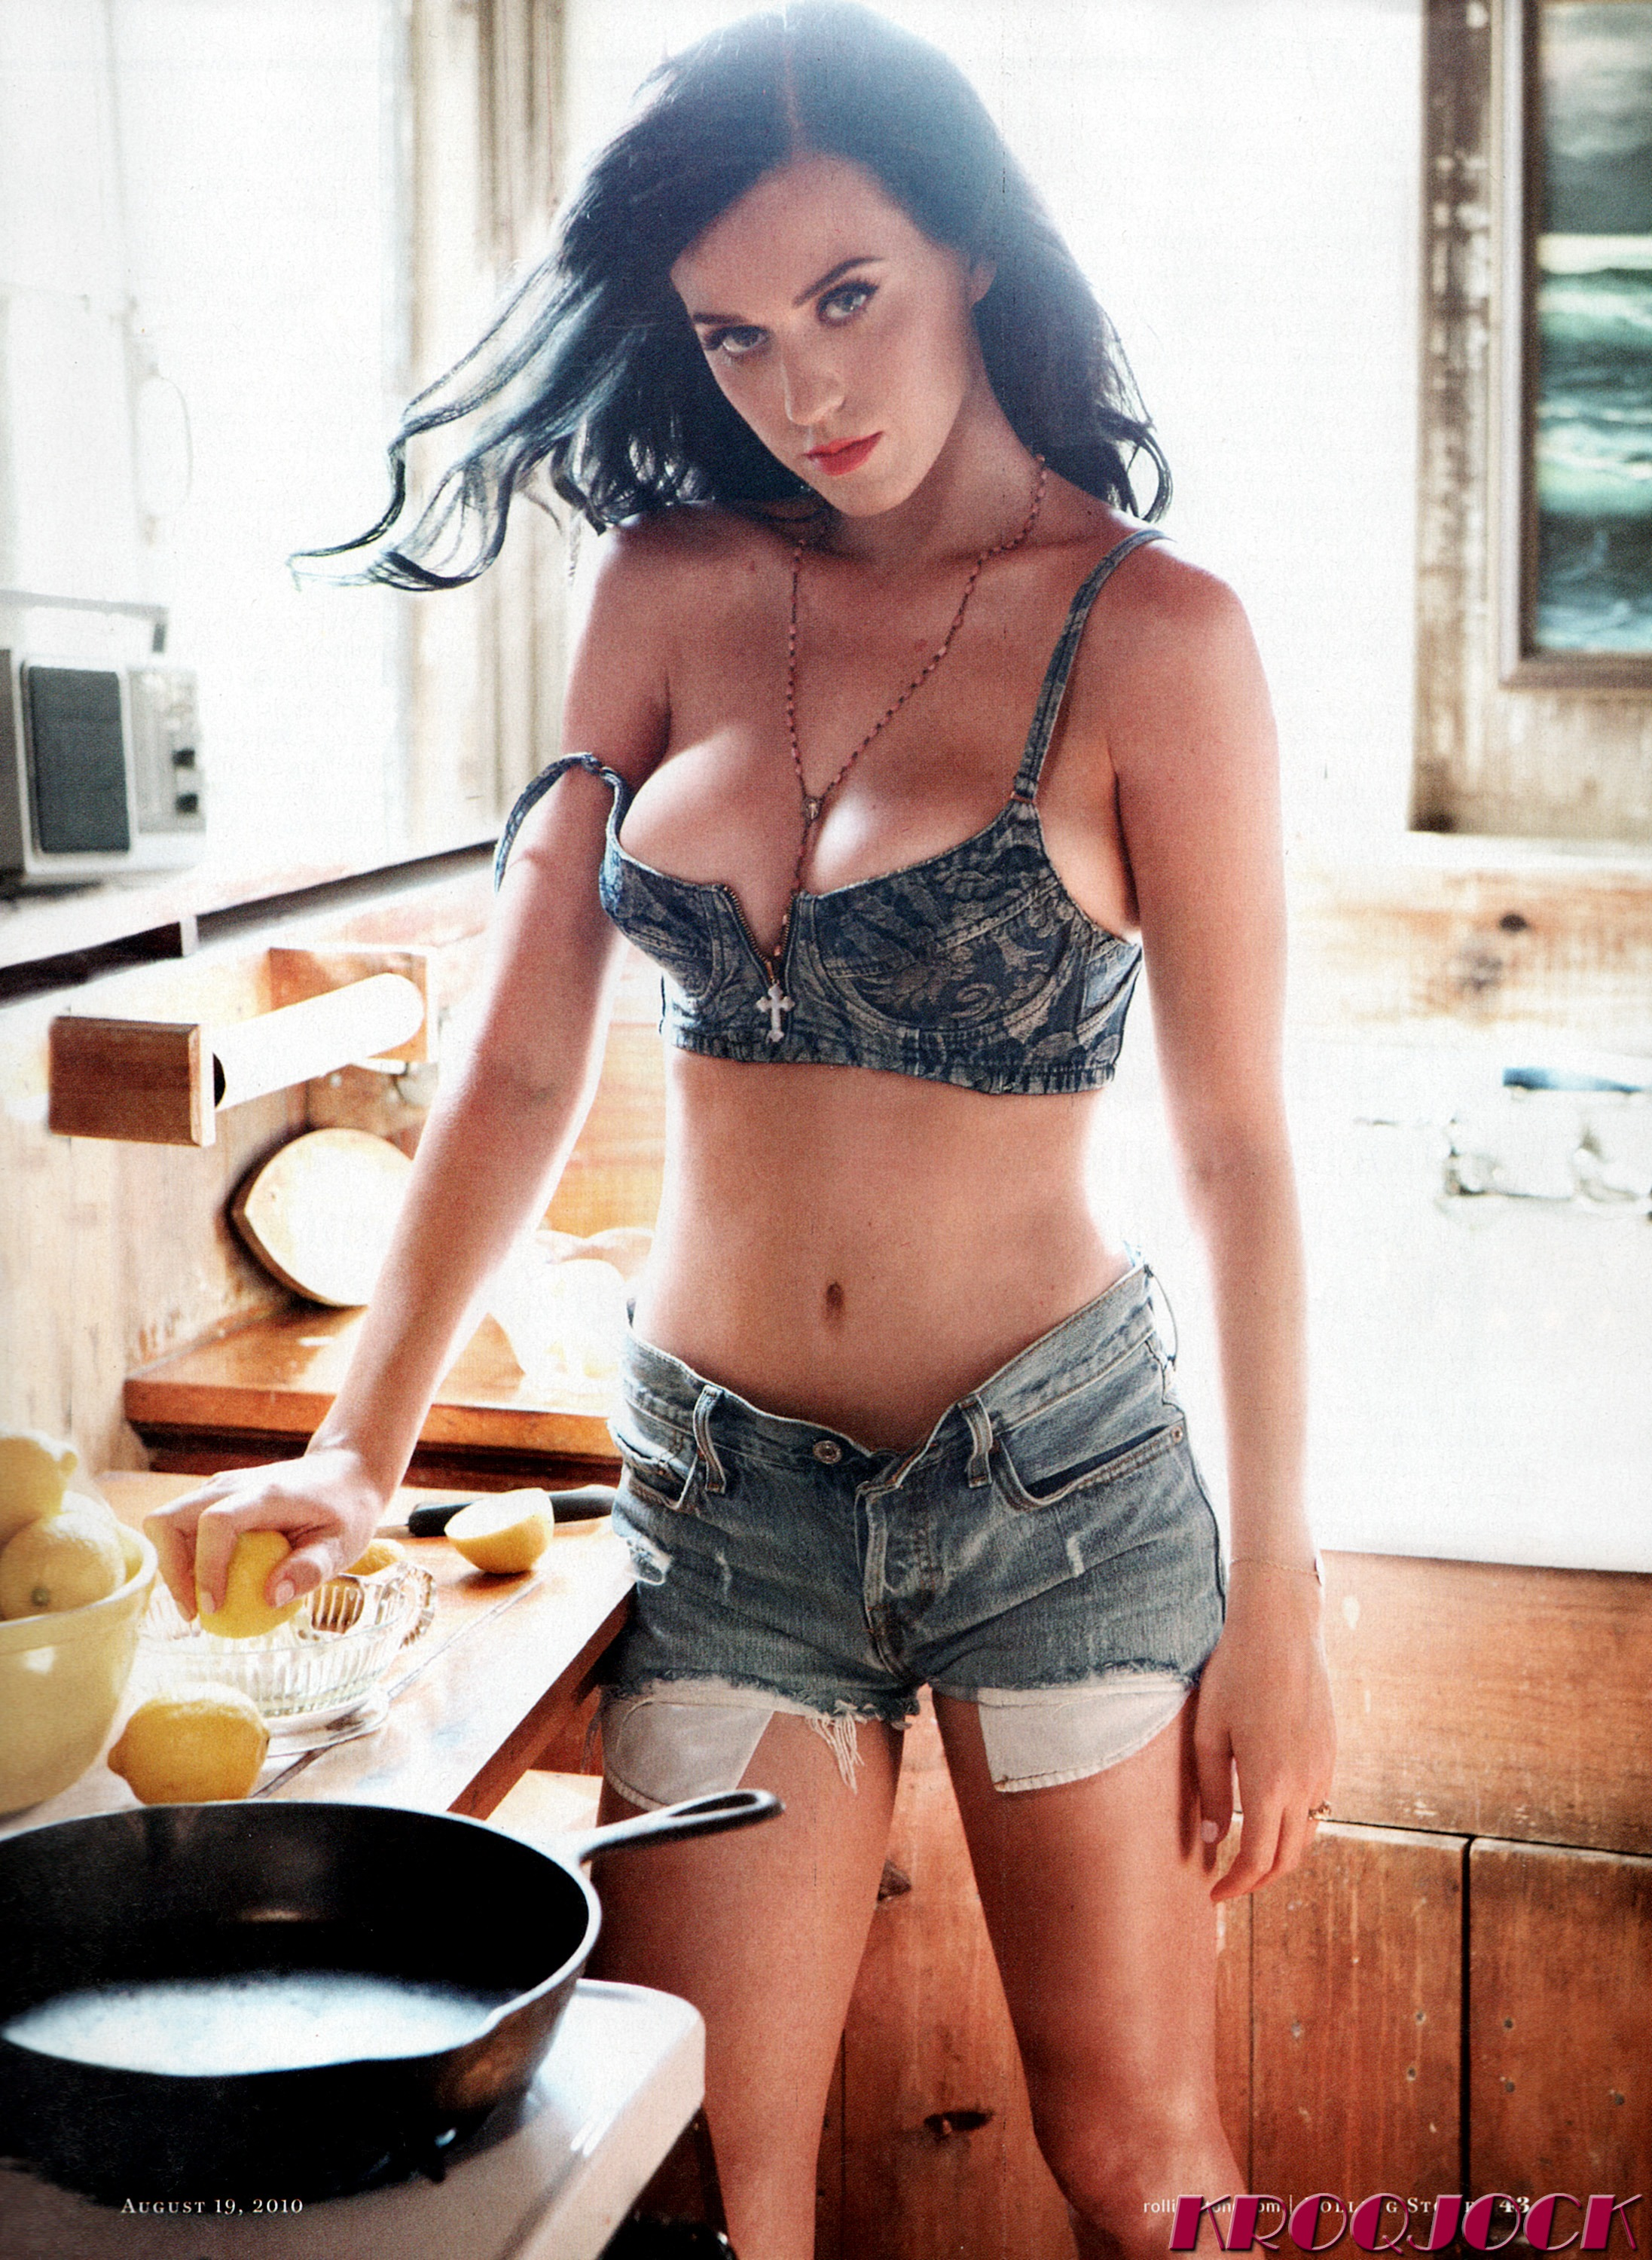 Katy Perry HQ 4 Katy 4jpg 3899861 Free